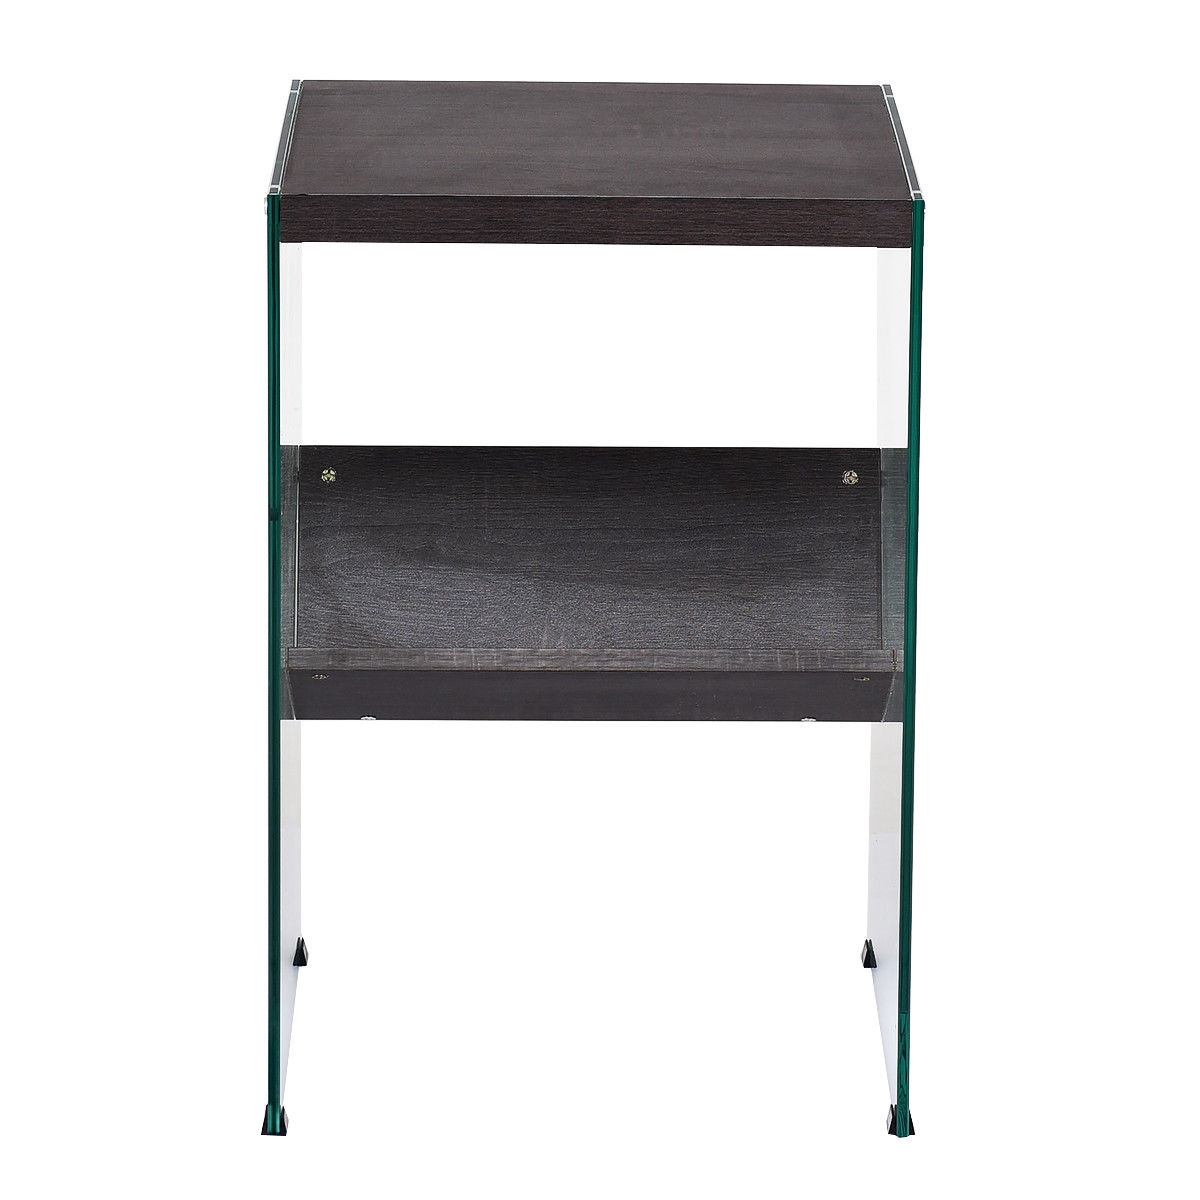 Modern 2-Tier Soho Tempered Glass Accent Table with Wood Top